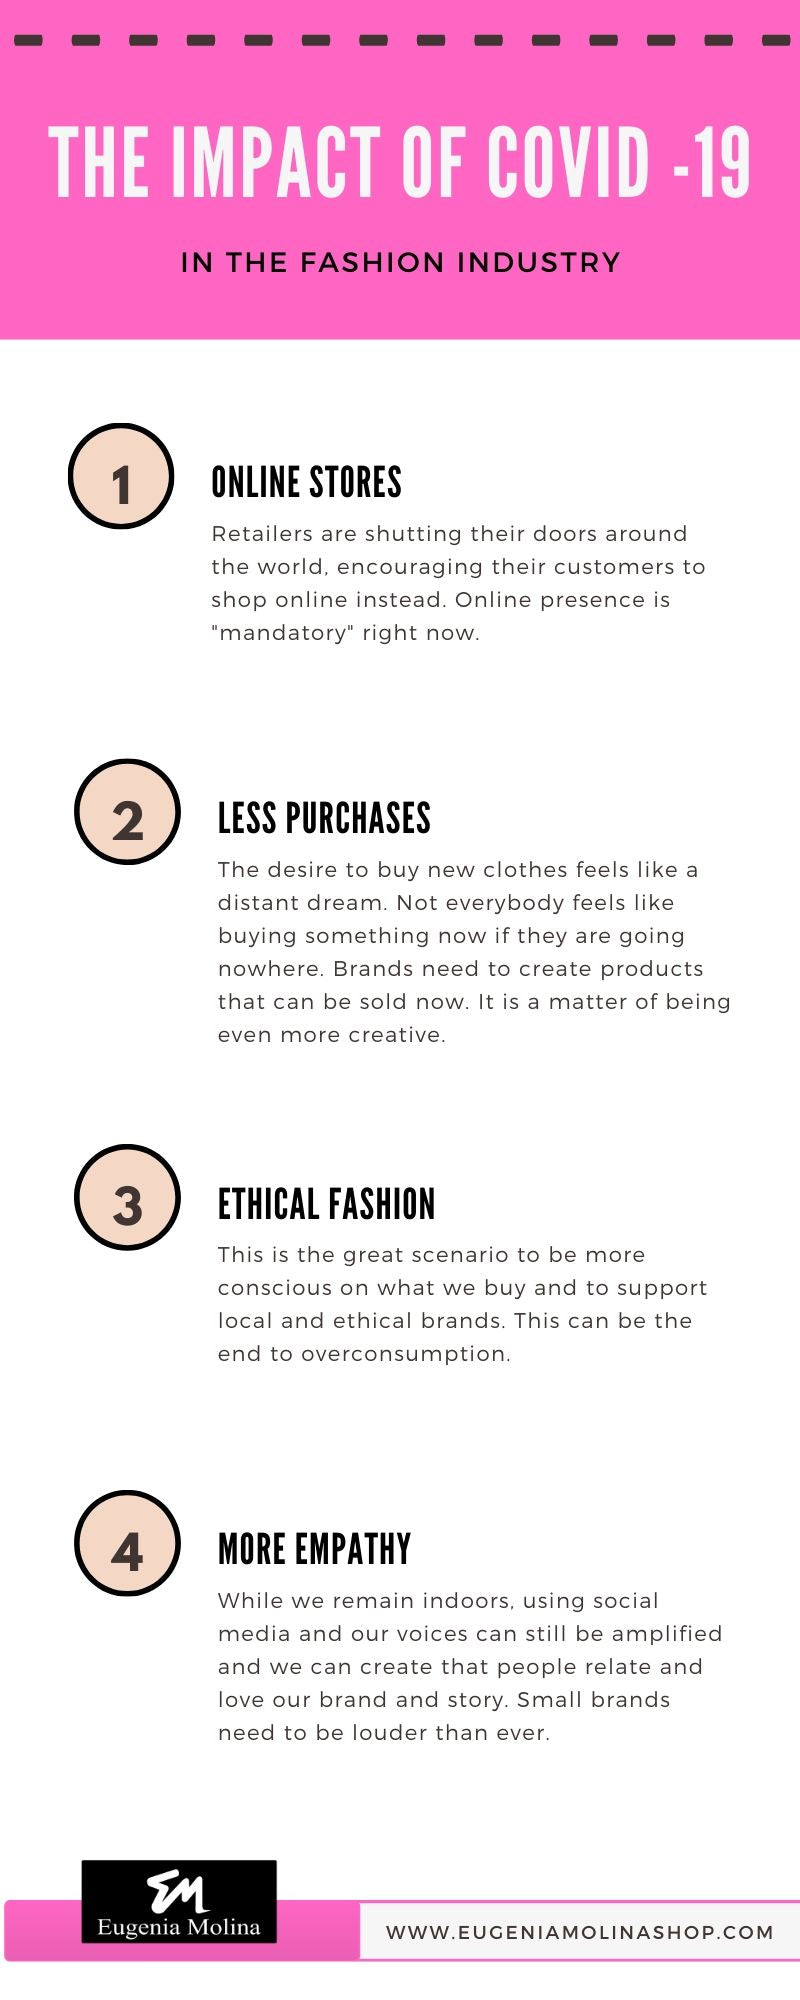 the impact of covid - 19 in fashion industry